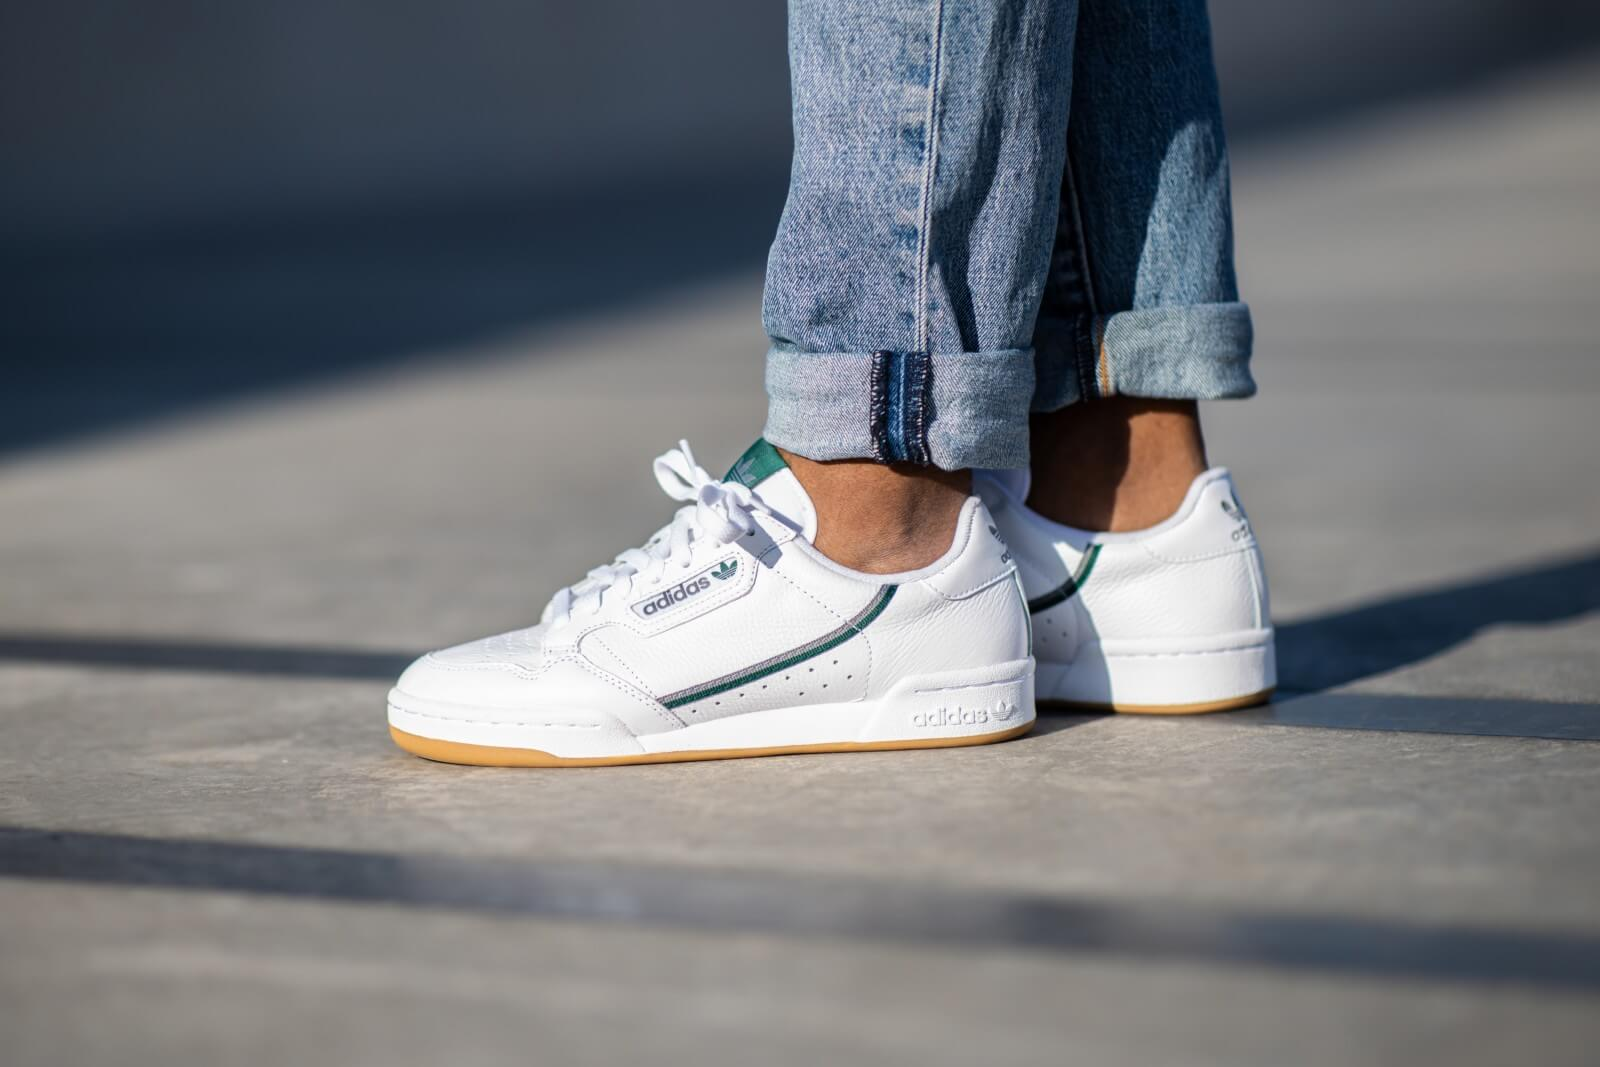 Adidas Continental Cloud White/Grey Three-Collegiate Green - FV2873